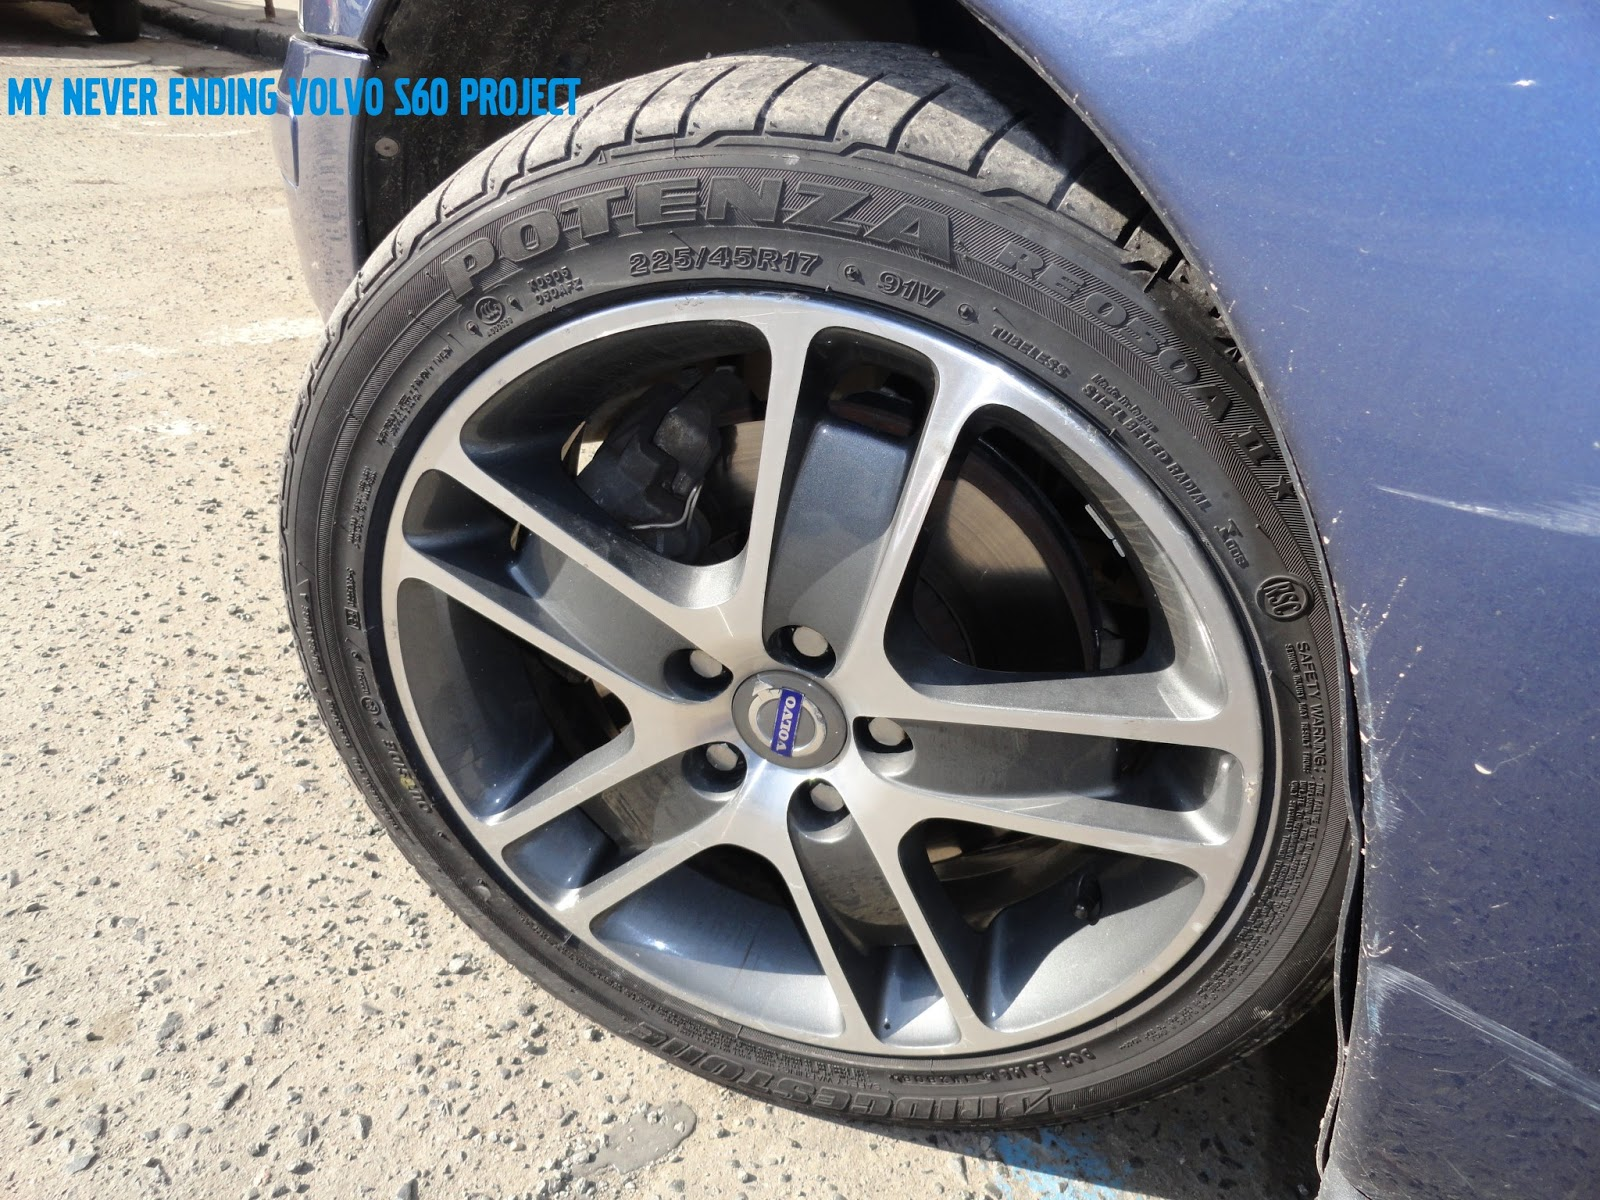 try htm forums up inches nue com for showthread did wheels fitment project a just volvo us out swedespeed to products more it design custom info s rotiform showed cast their